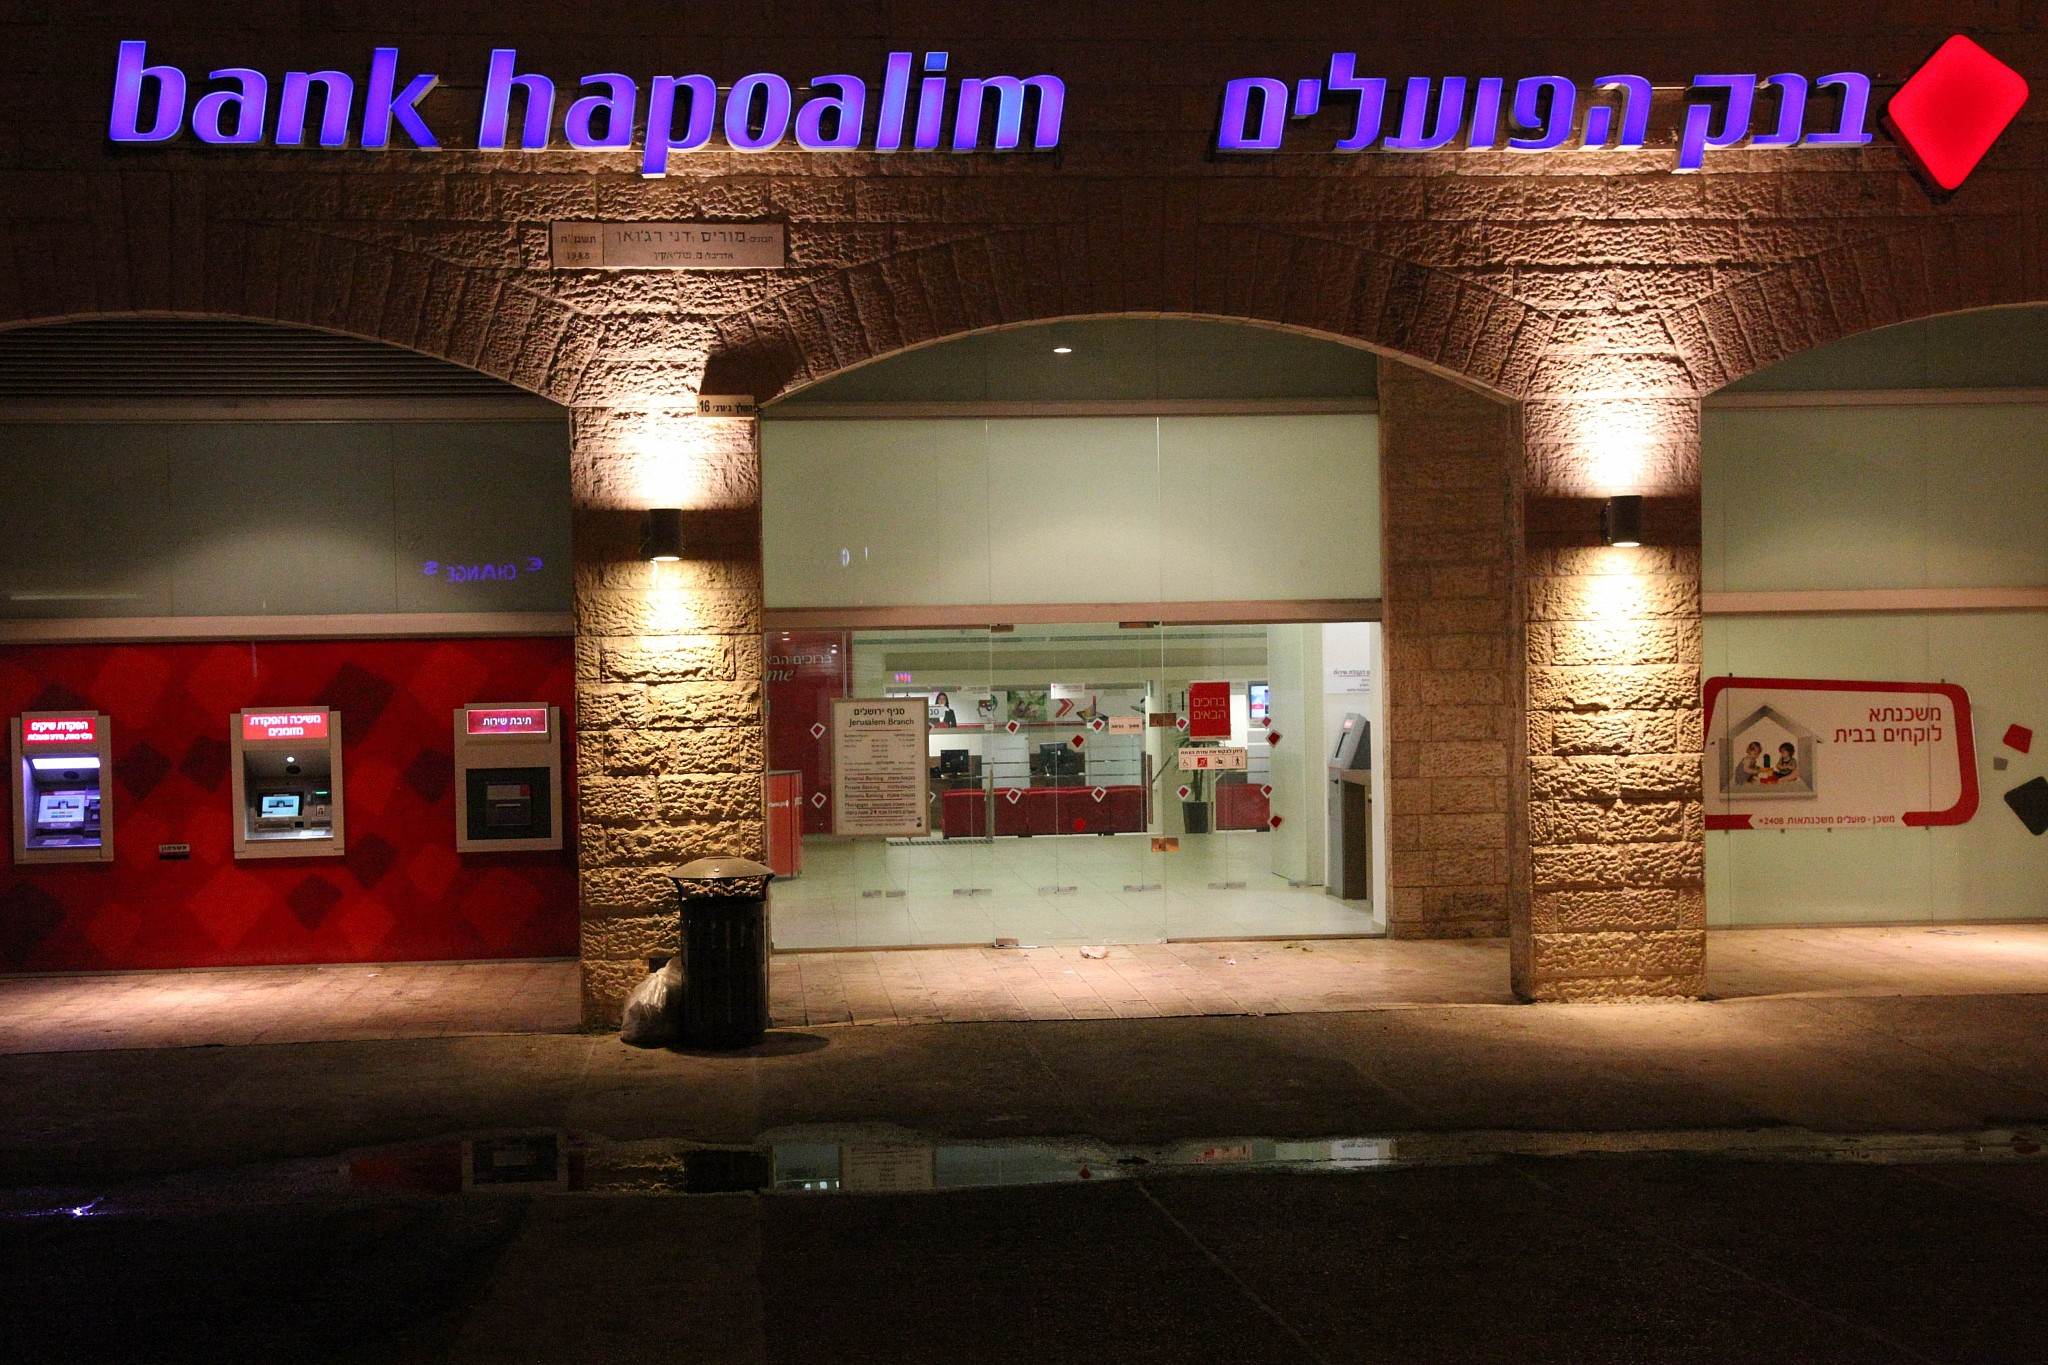 Bank Hapoalim says U.S. tax settlement may be higher than thought